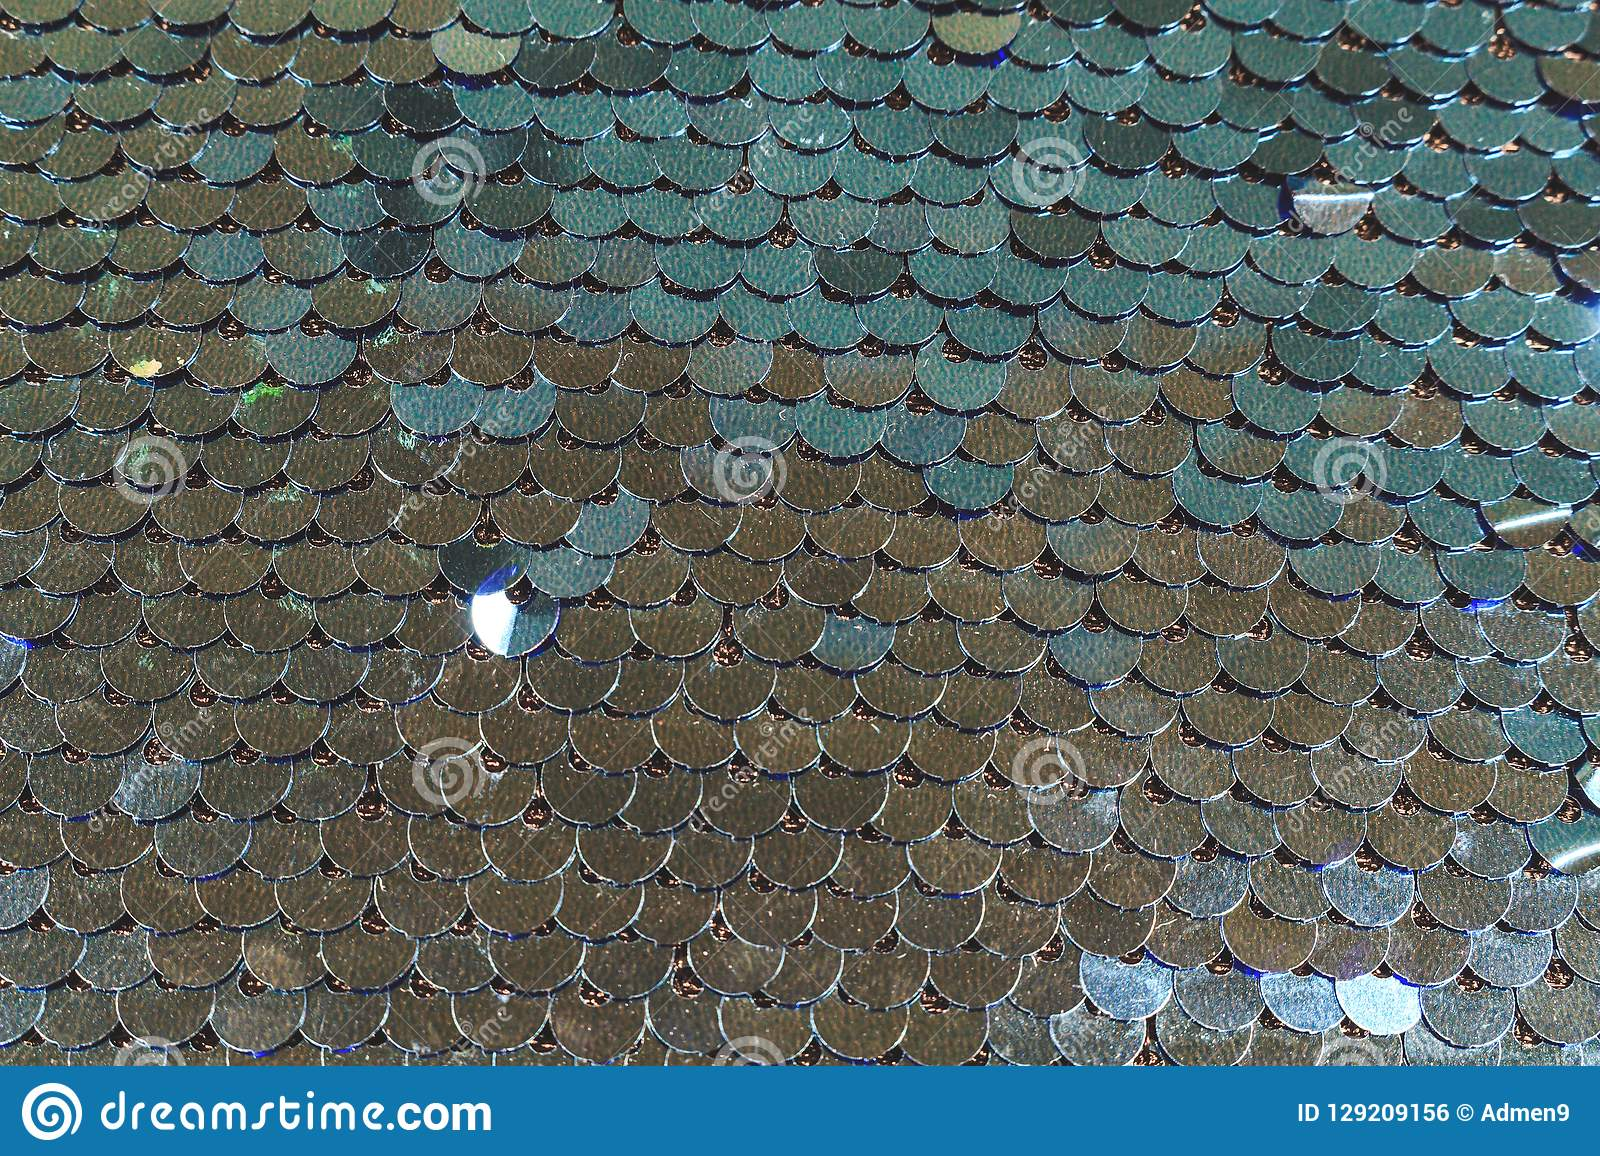 Brilliant fish scales shimmers in different colors of blue silver